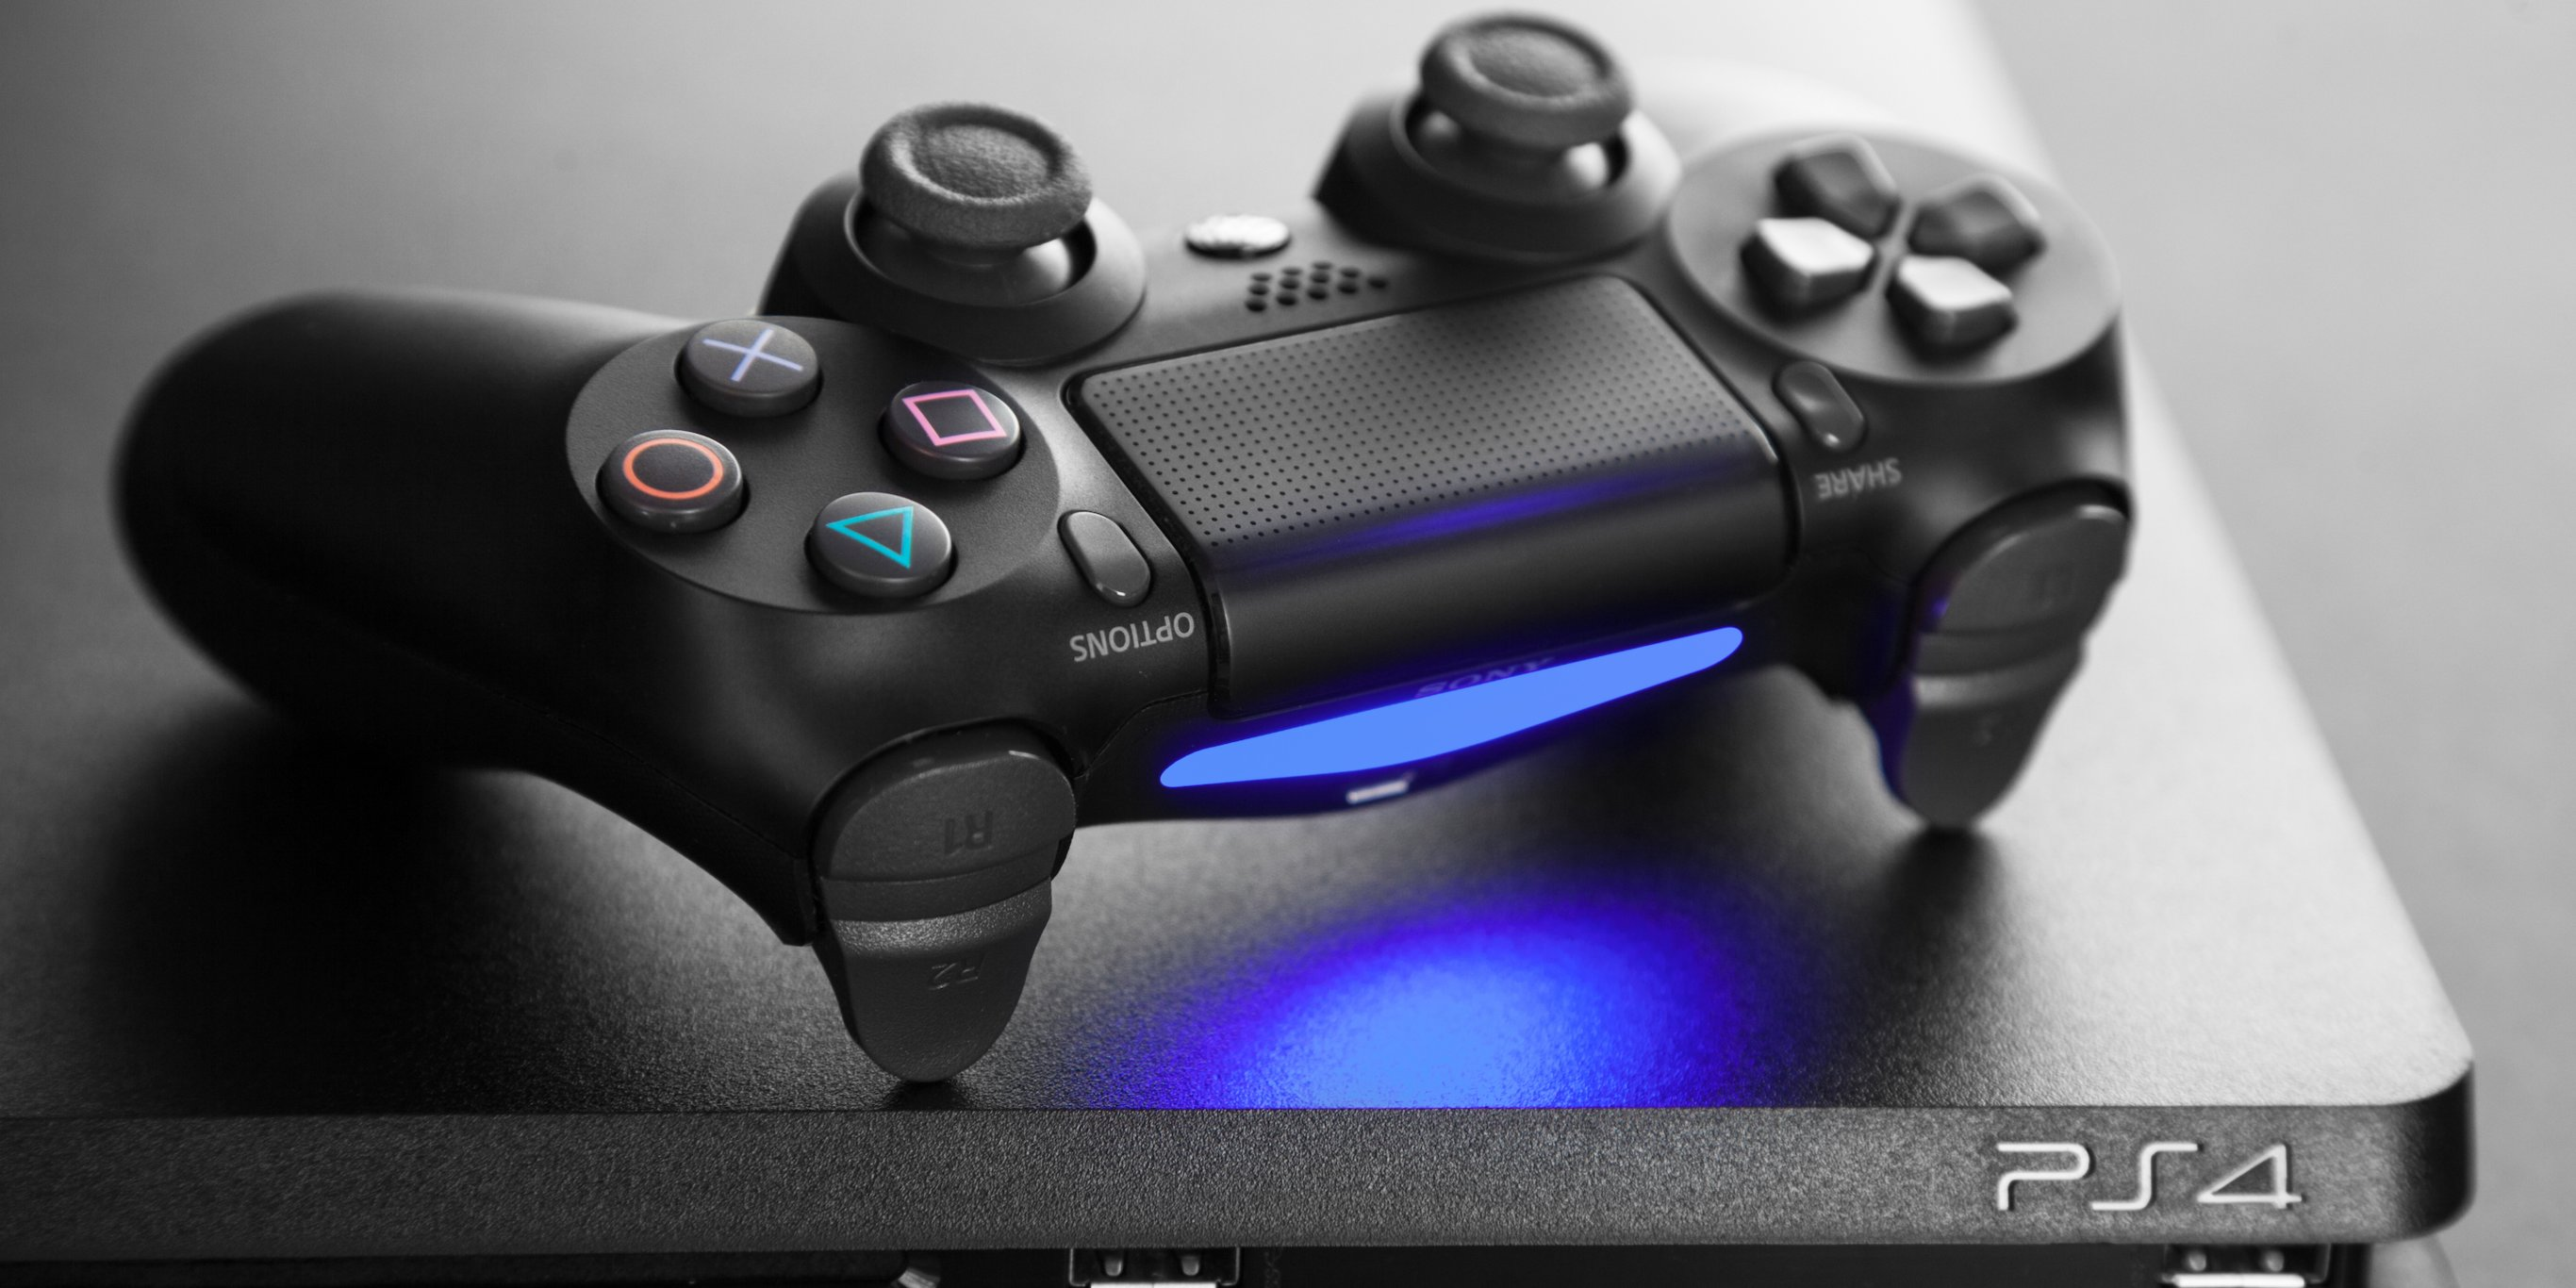 How to charge a PlayStation 4 controller using your PS4 console